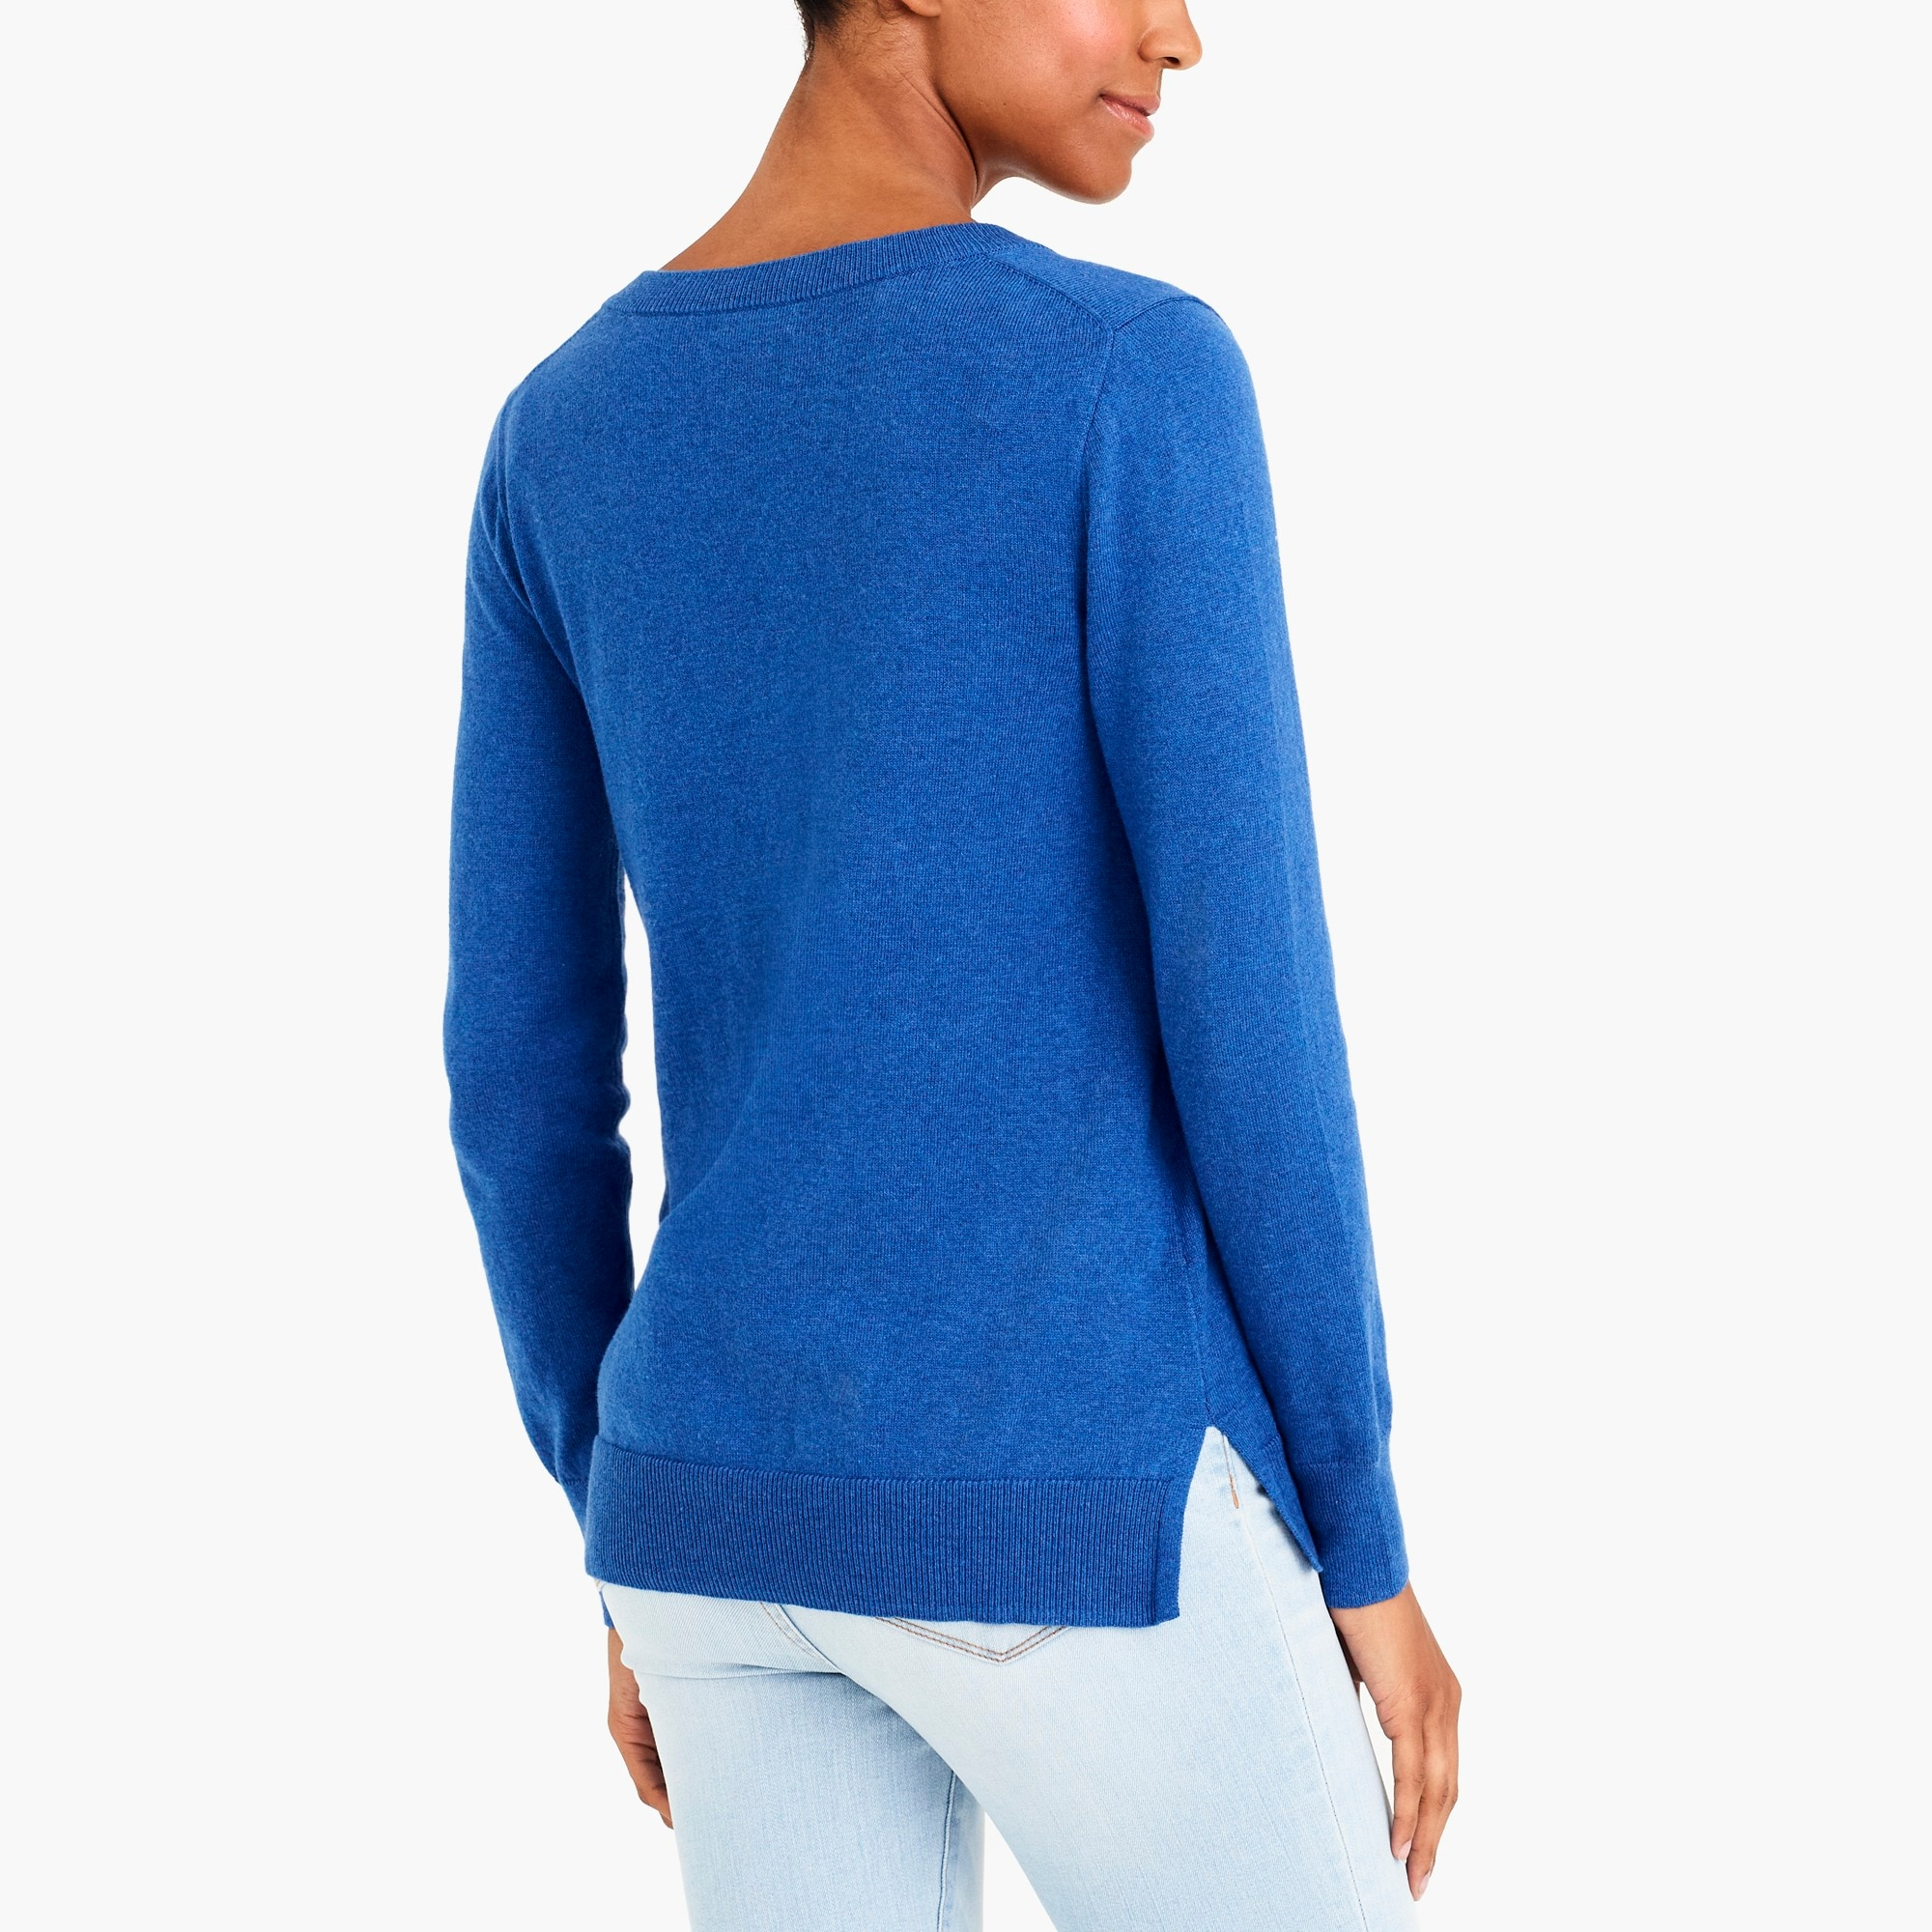 Image 3 for Cotton V-neck sweater